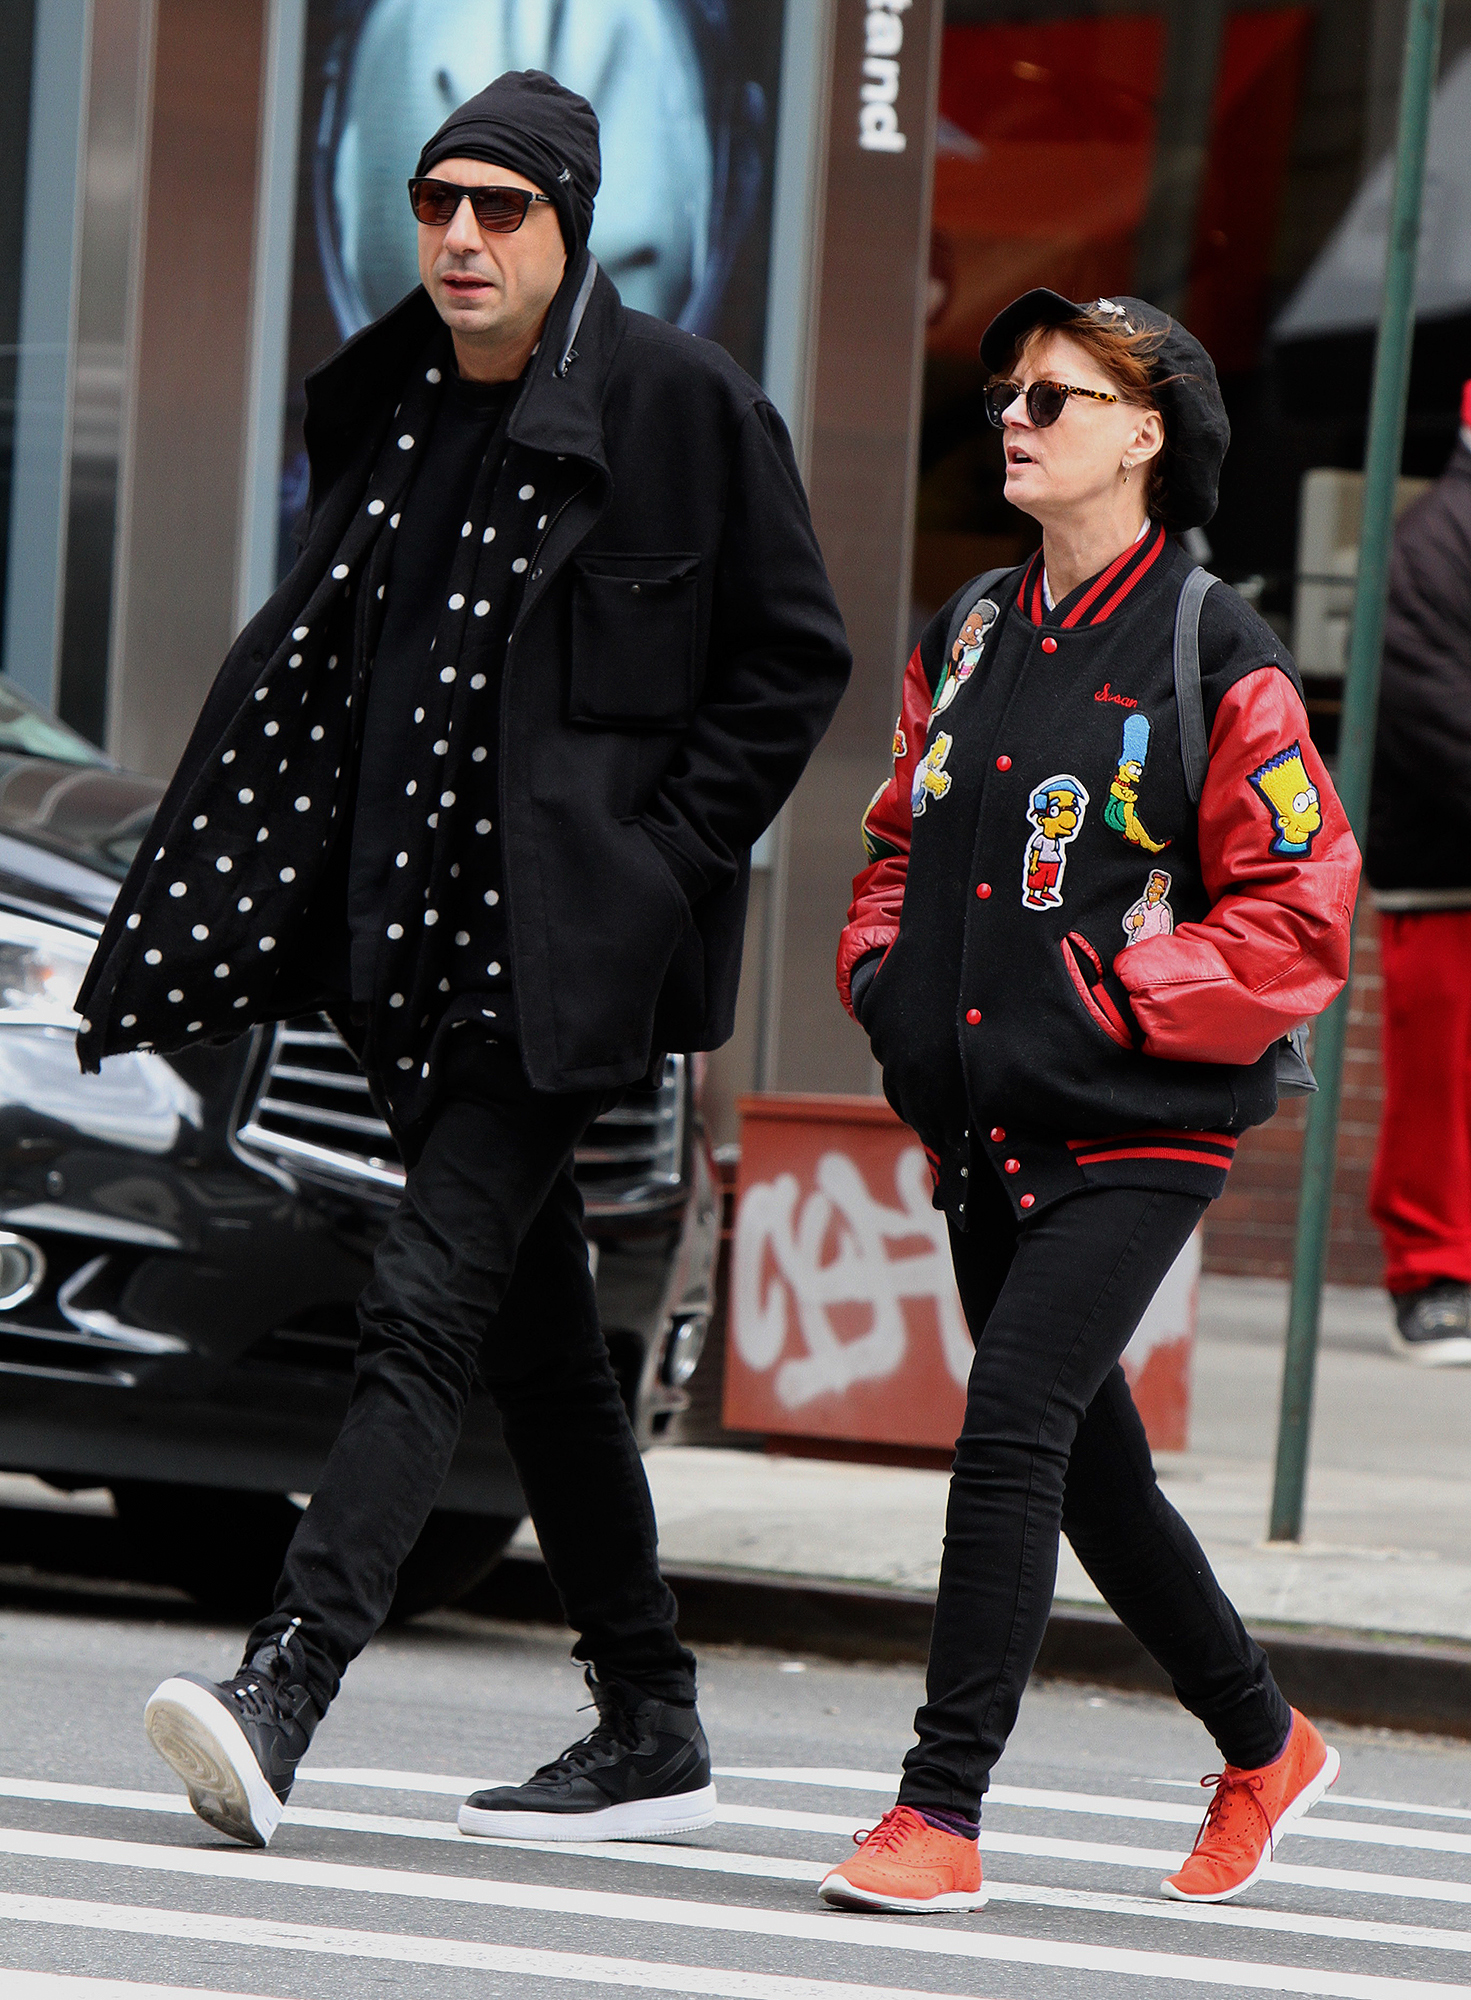 Susan Sarandon with a mystery man out and about in New York City.